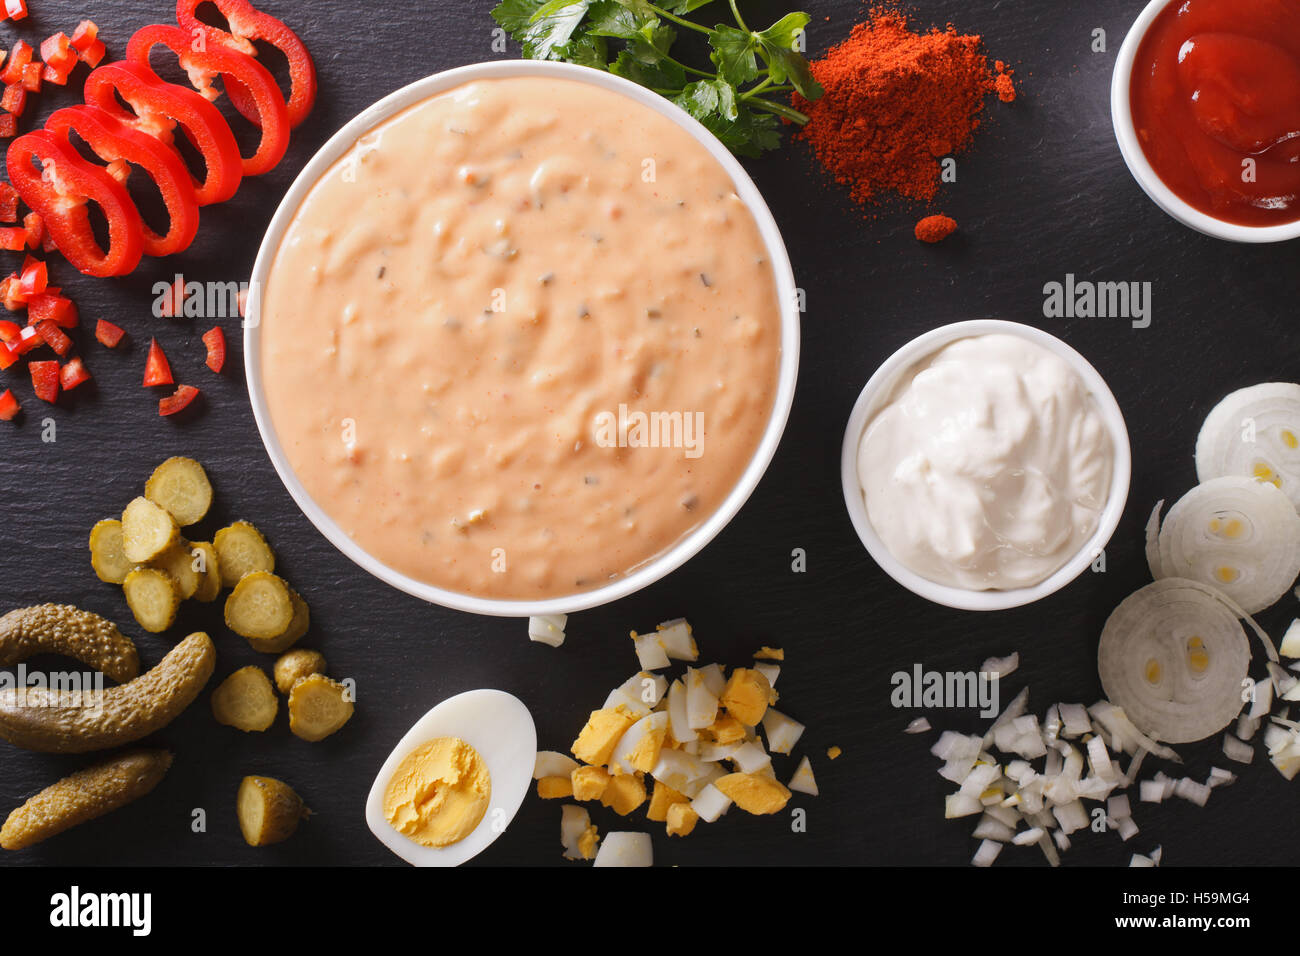 Thousand Island Dressing with ingredients close-up on the table. Horizontal view from above - Stock Image